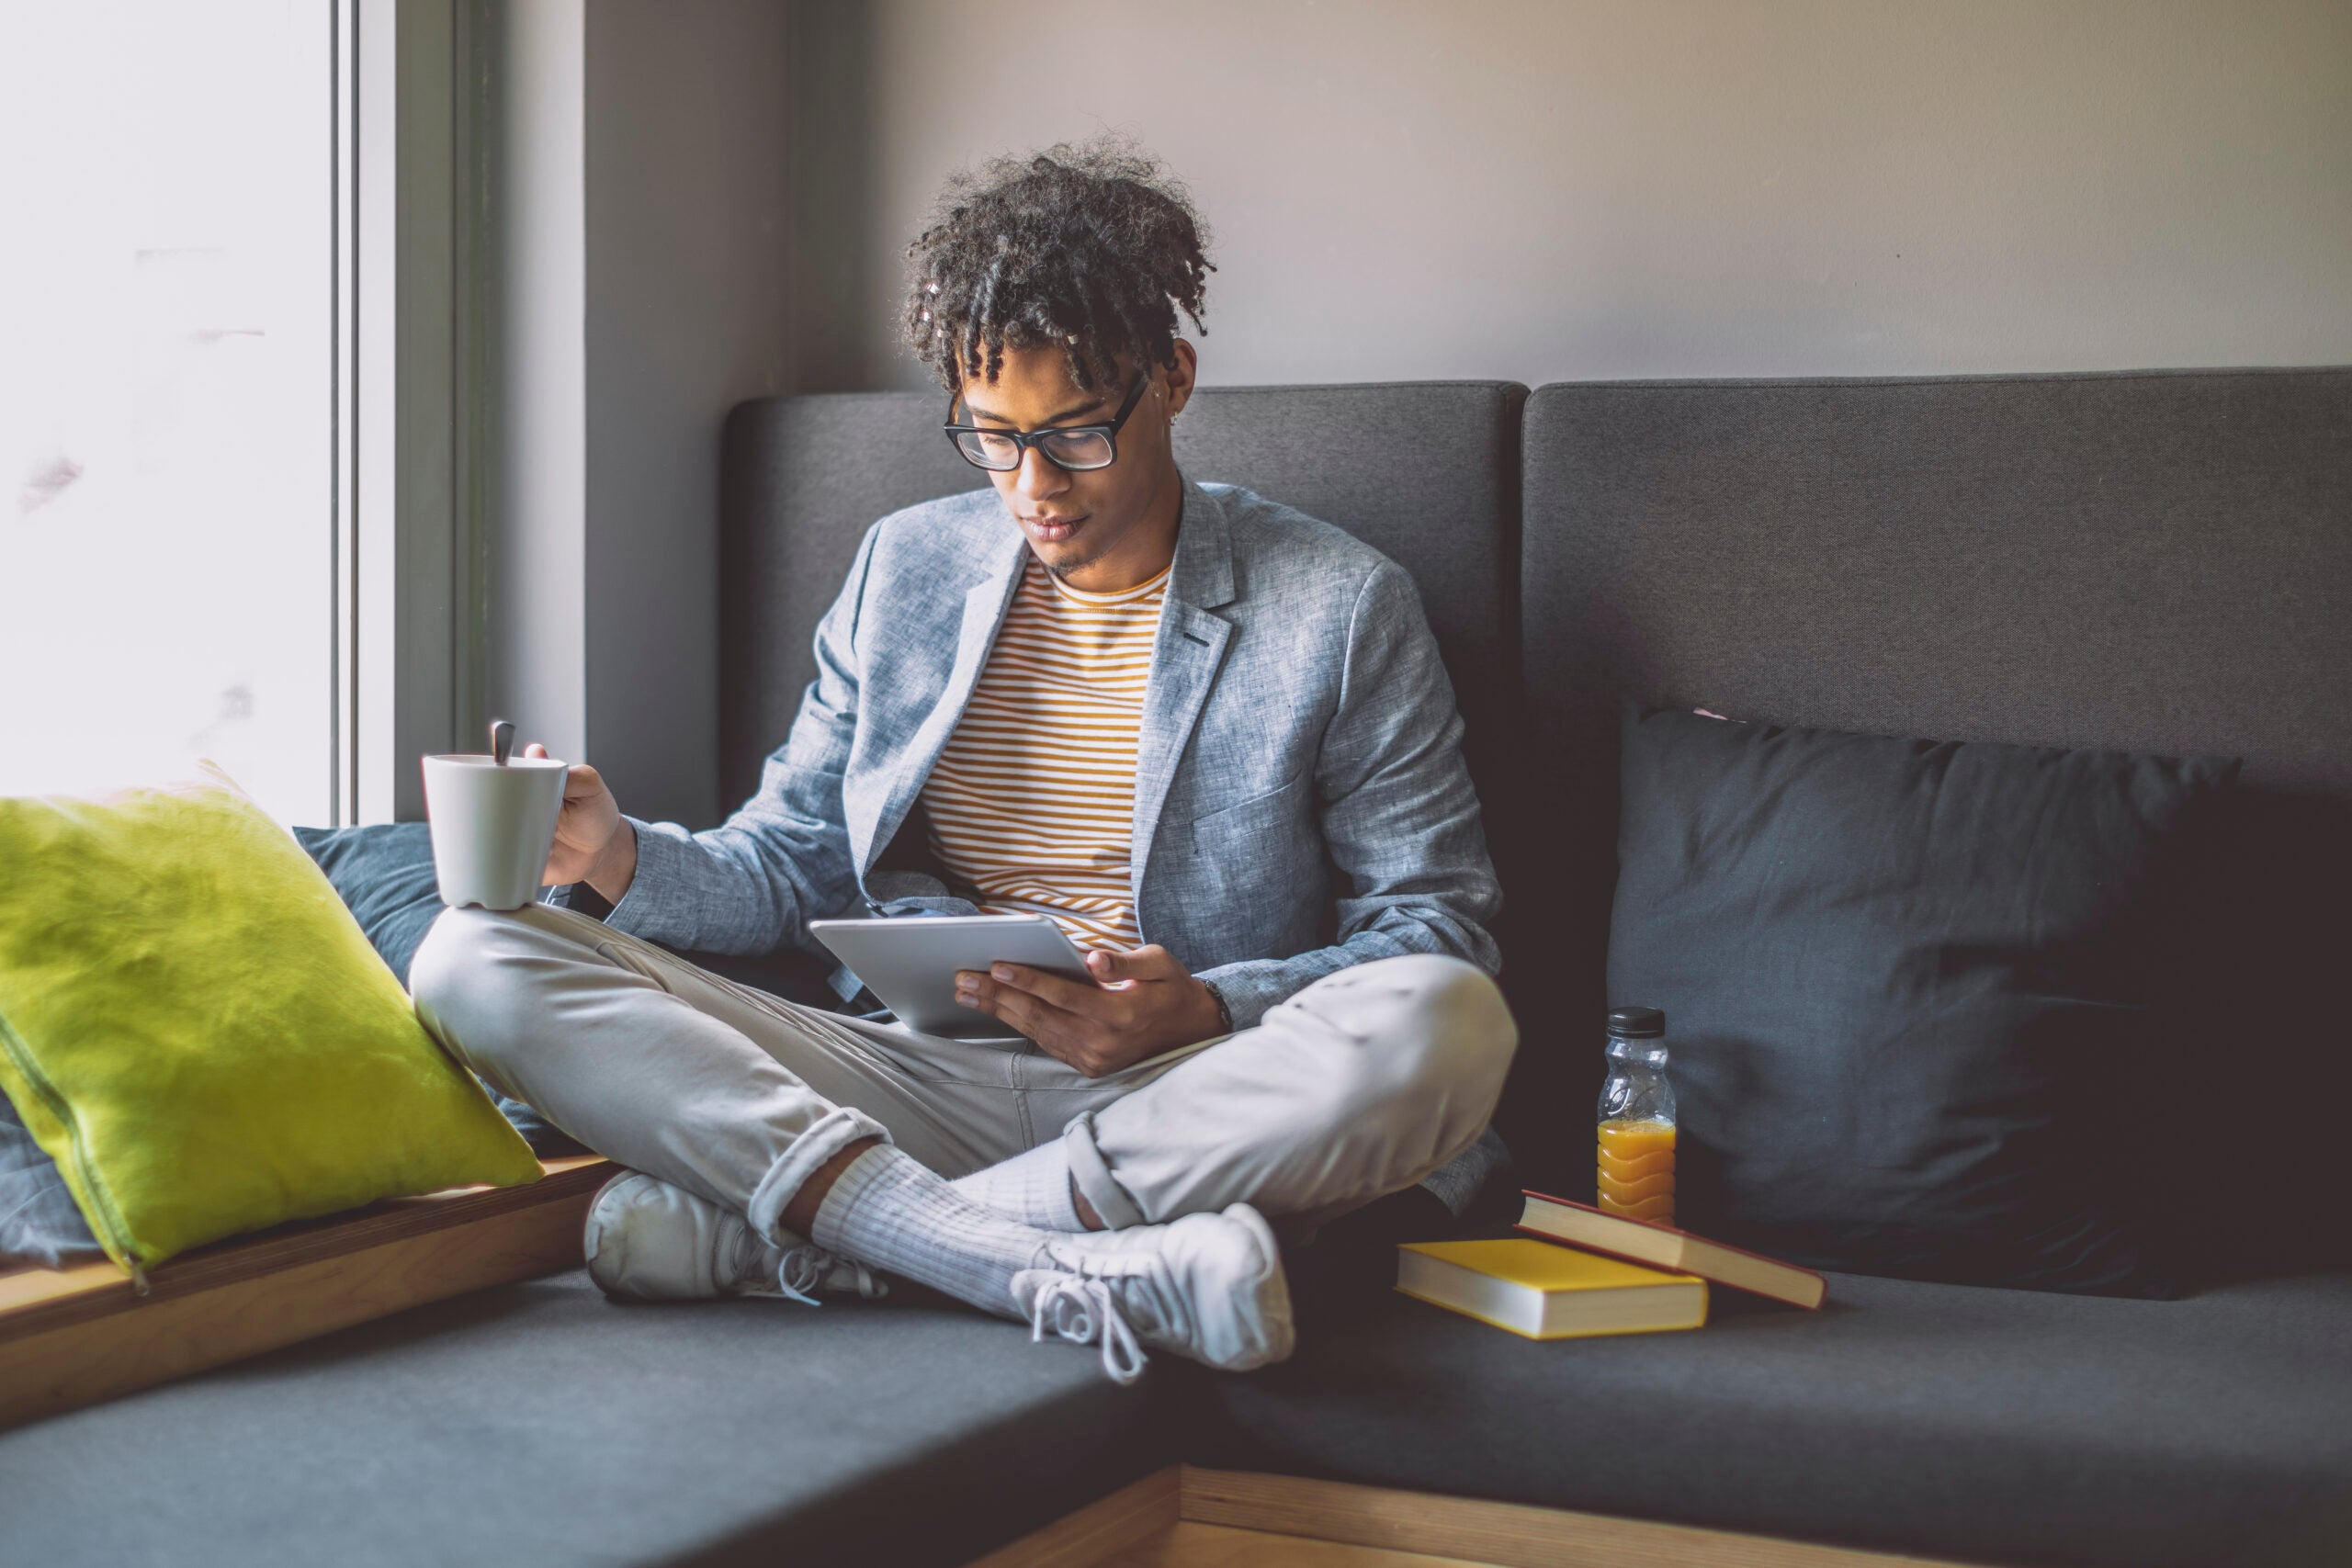 Man reading a book on the couch